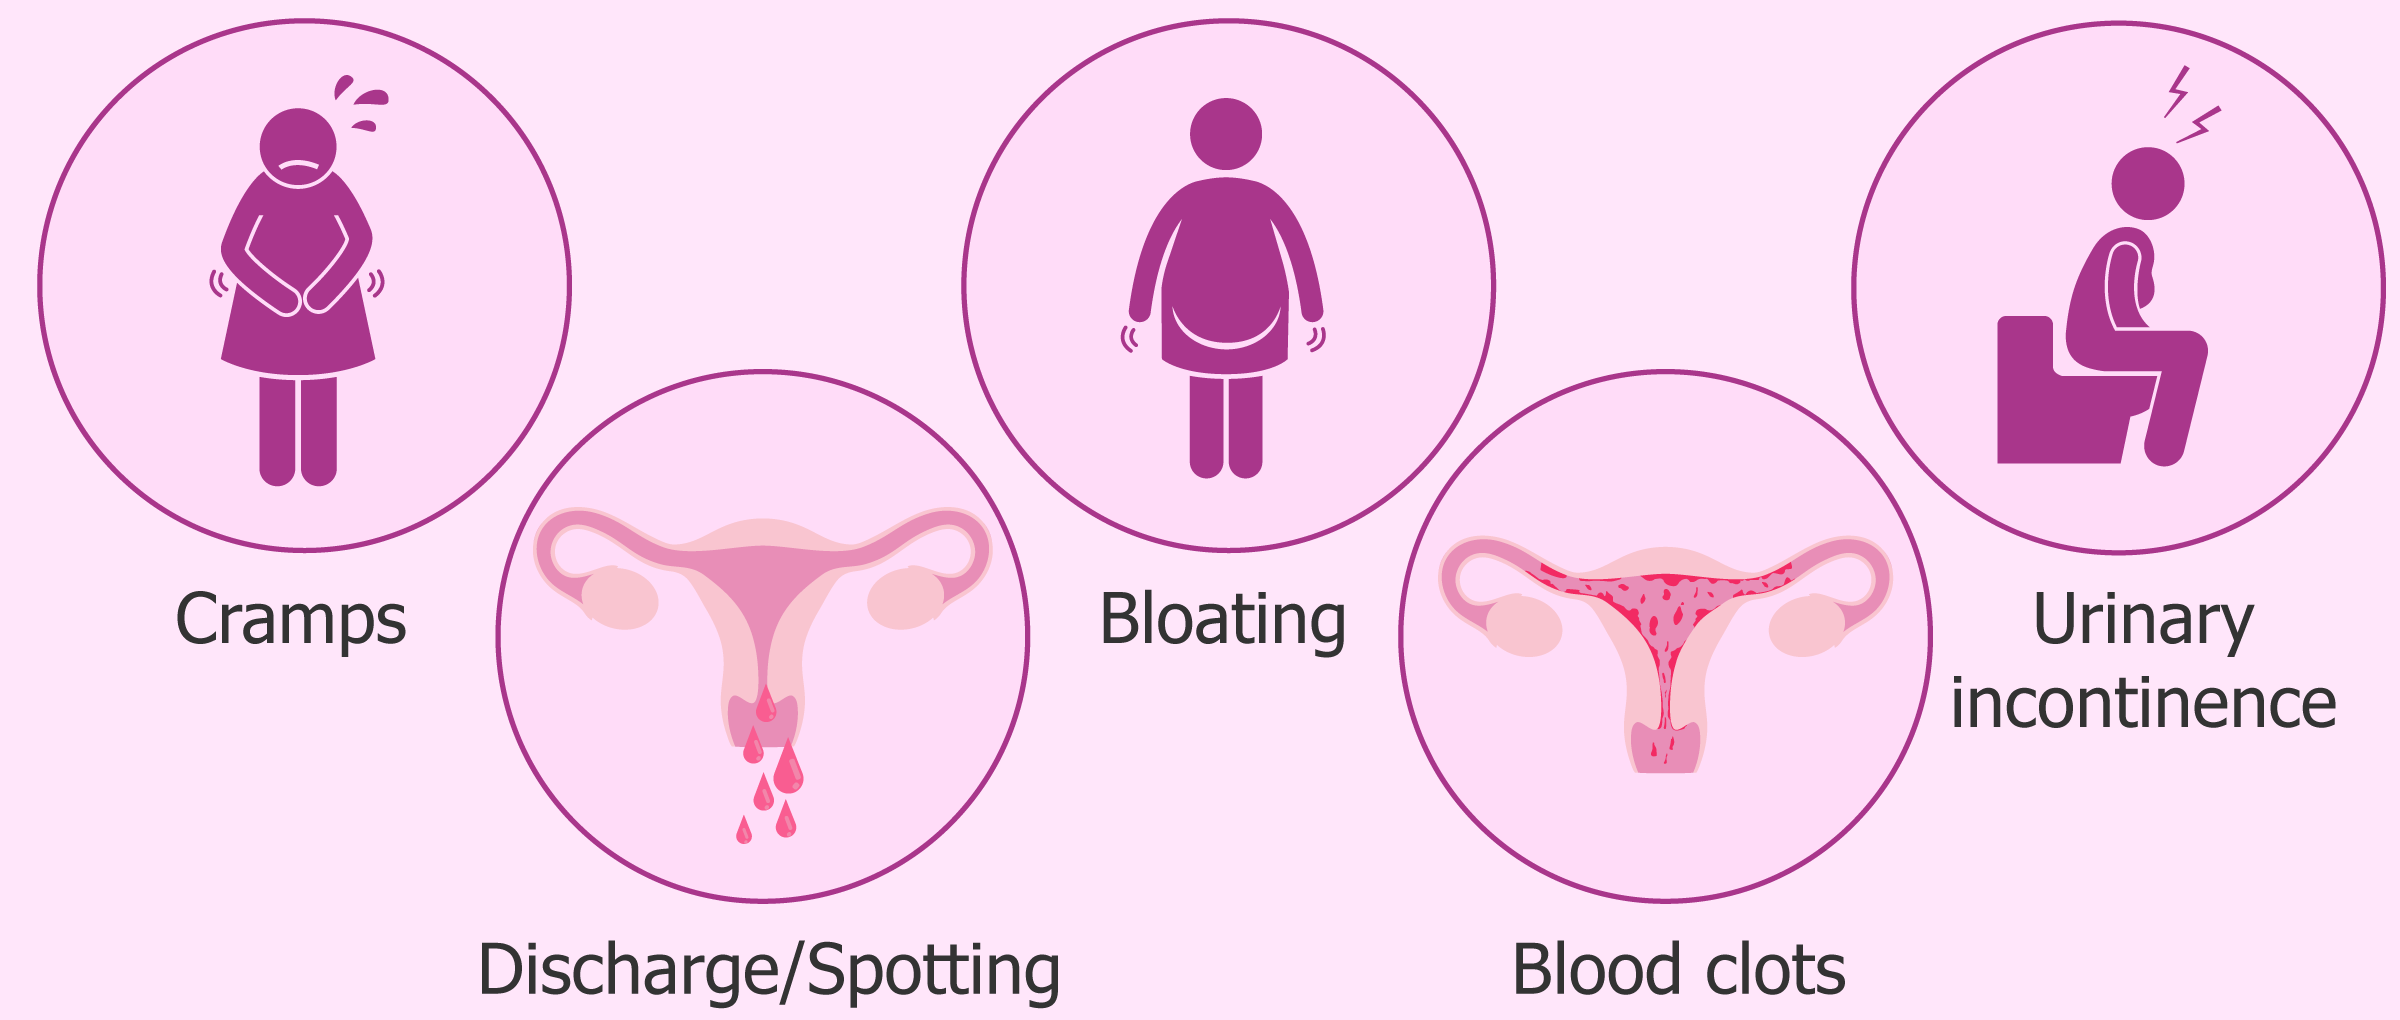 Potential side effects and complications after endometrial ablation